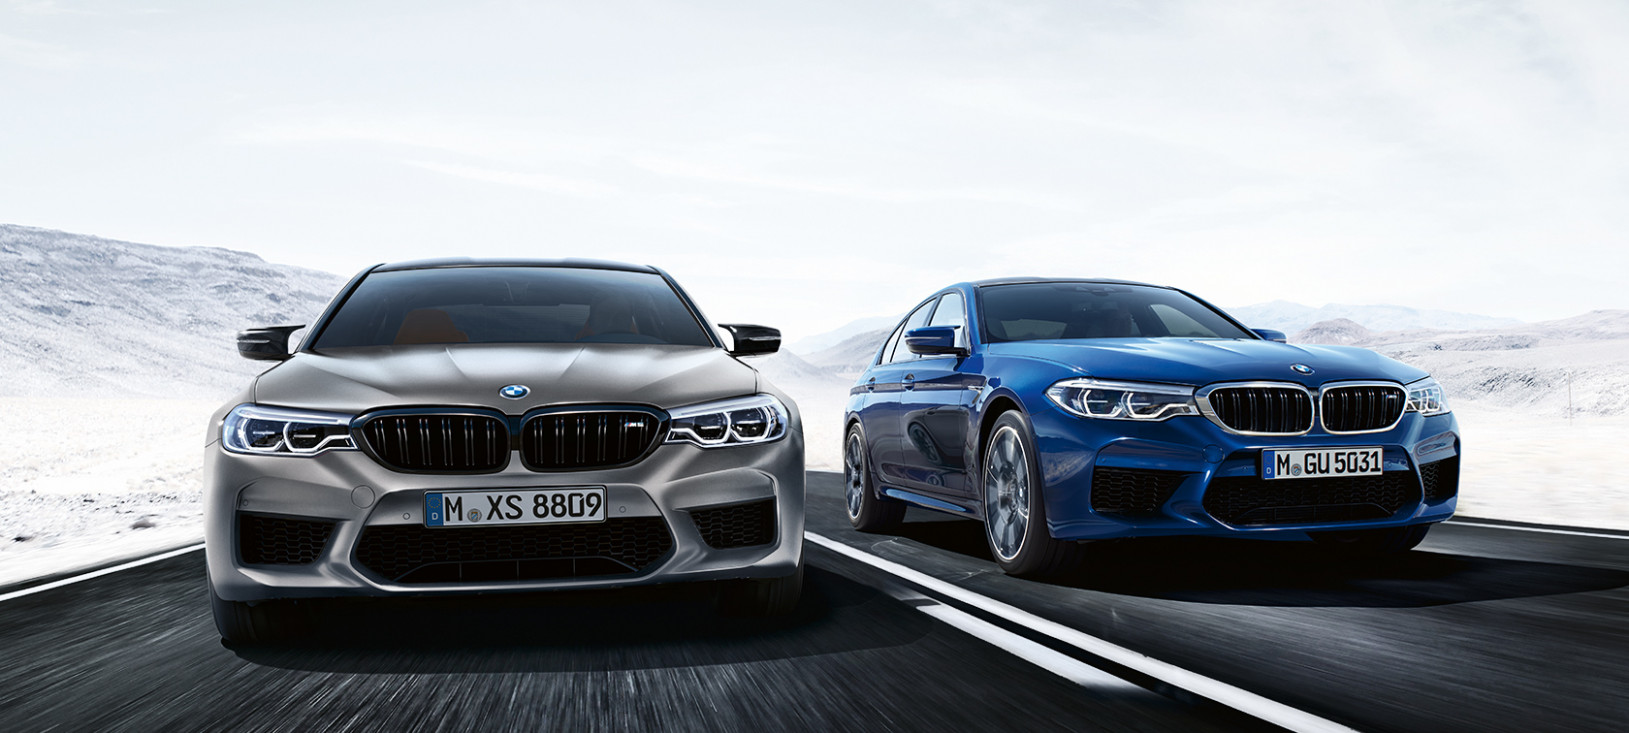 BMW Cars, Combine Luxury with Performance | BMW Abu Dhabi - bmw vacancies 2020